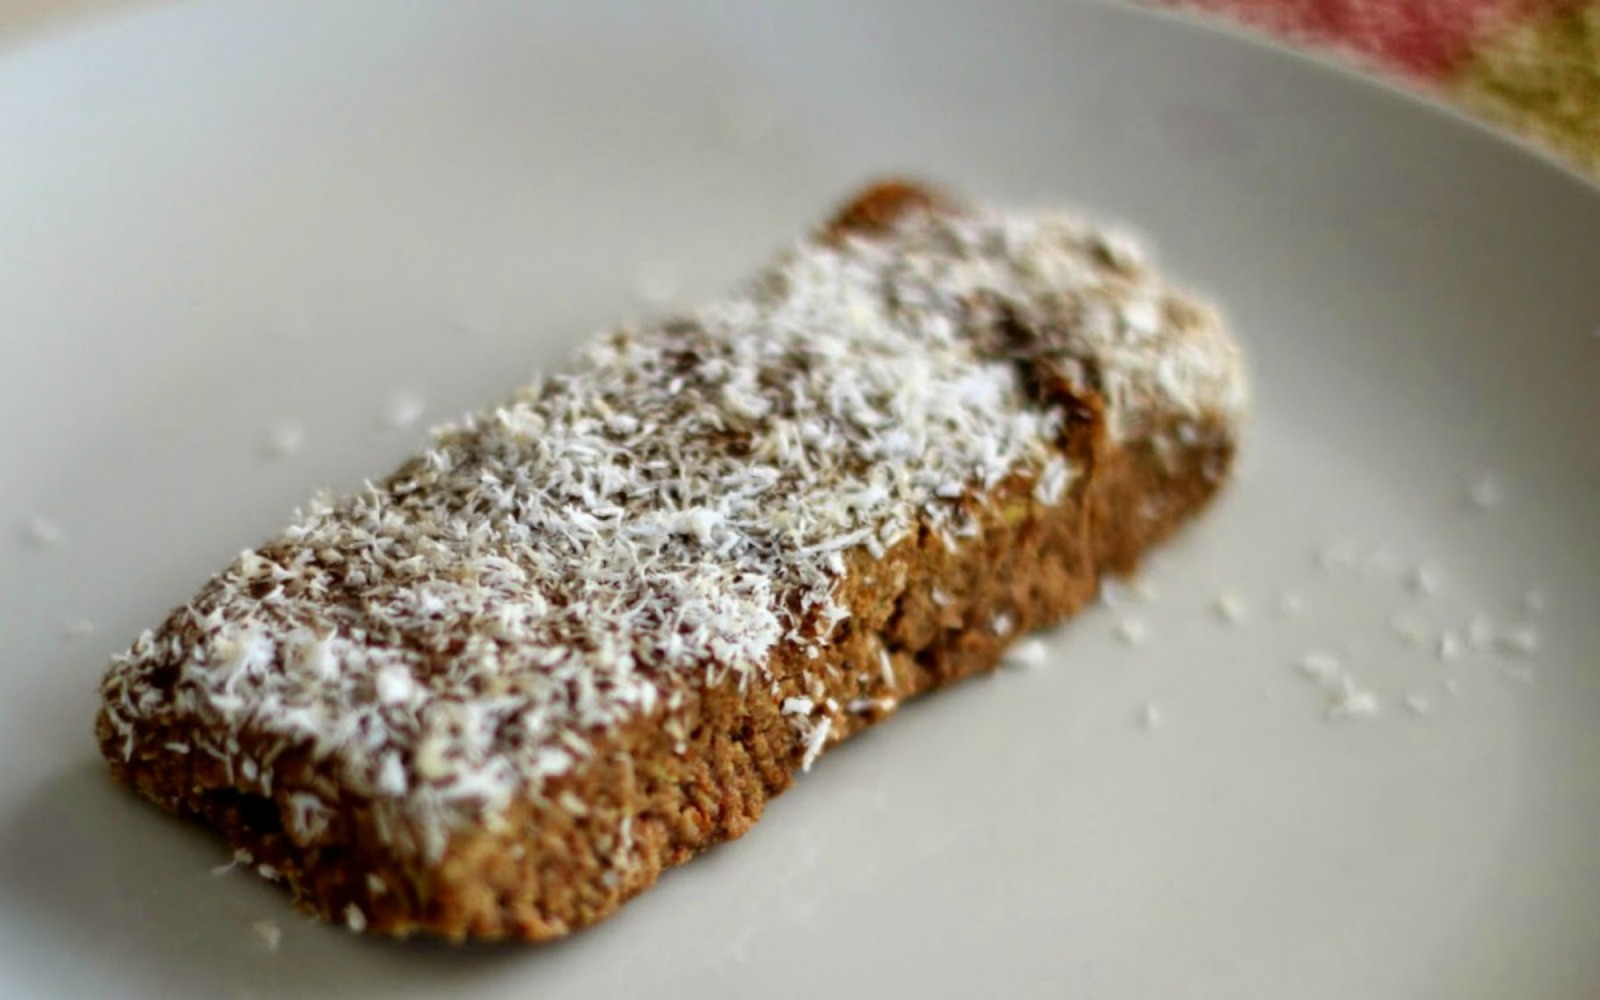 Low-Carb-Vanilla-Spice-Protein-Bars-The-Soulful-Spoon-1200x750